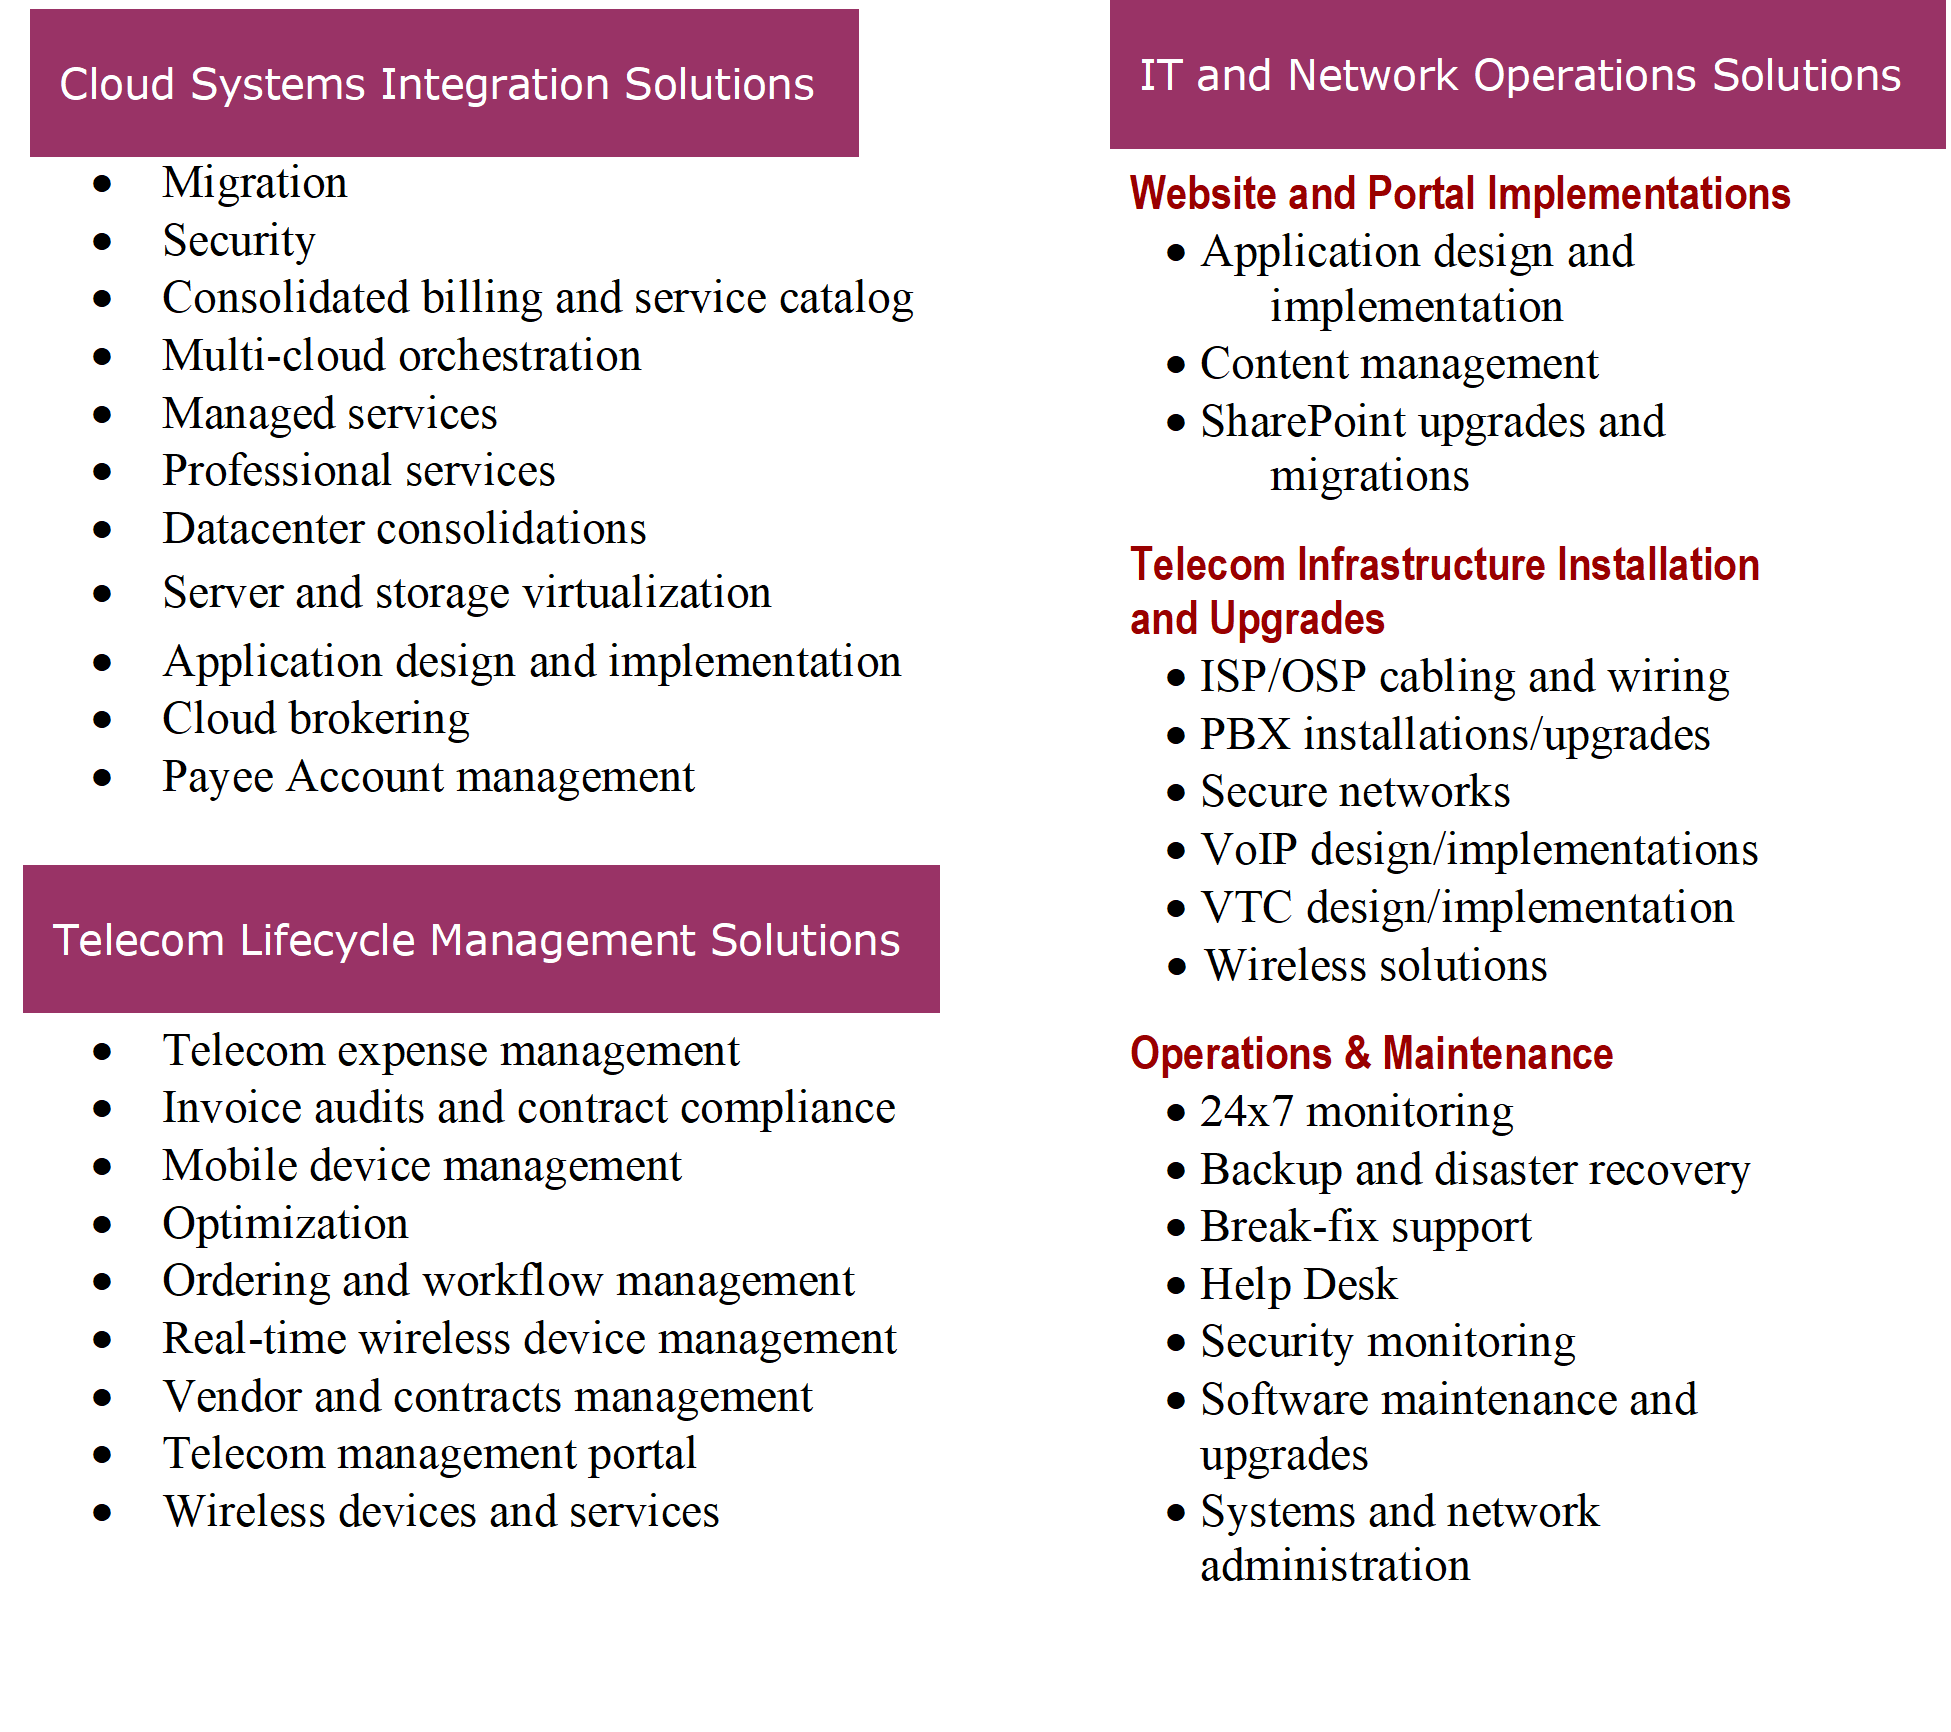 Services - 3 areas